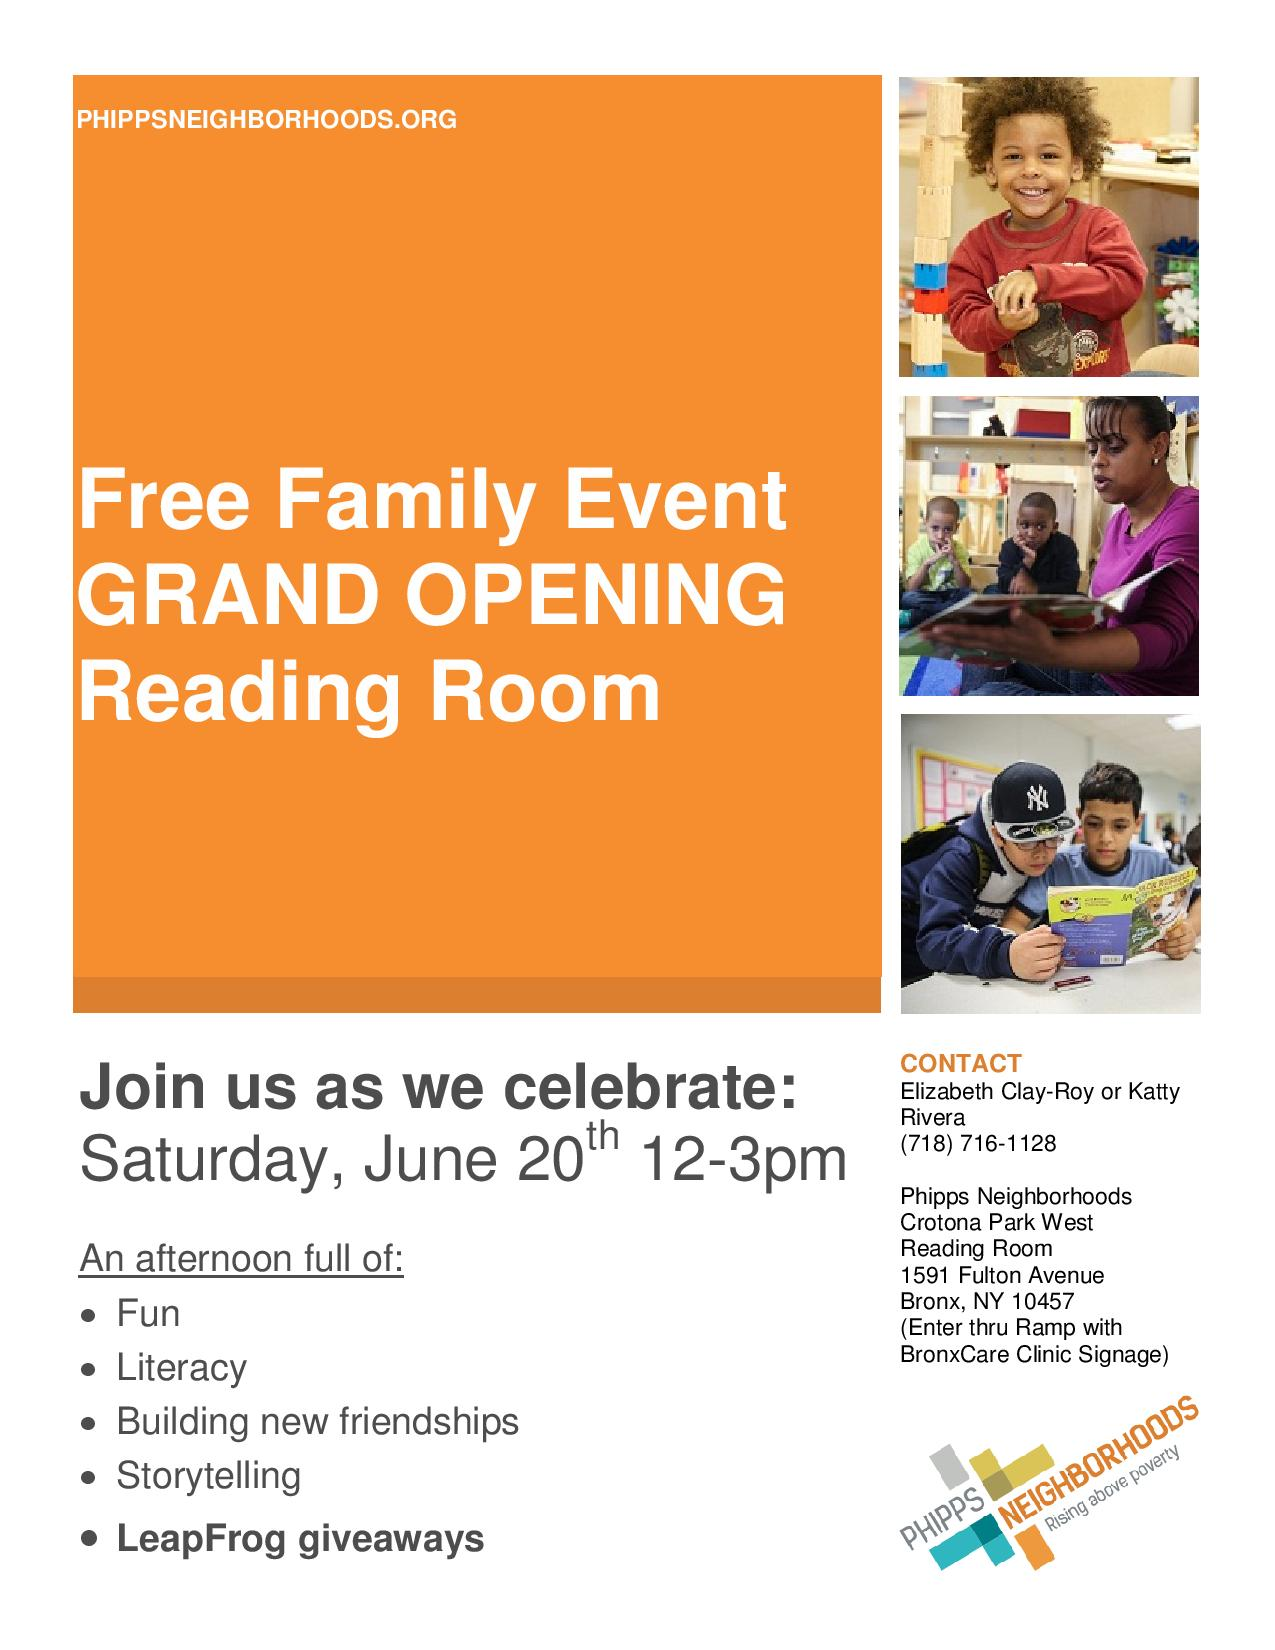 Grand Opening of New Family Reading Room